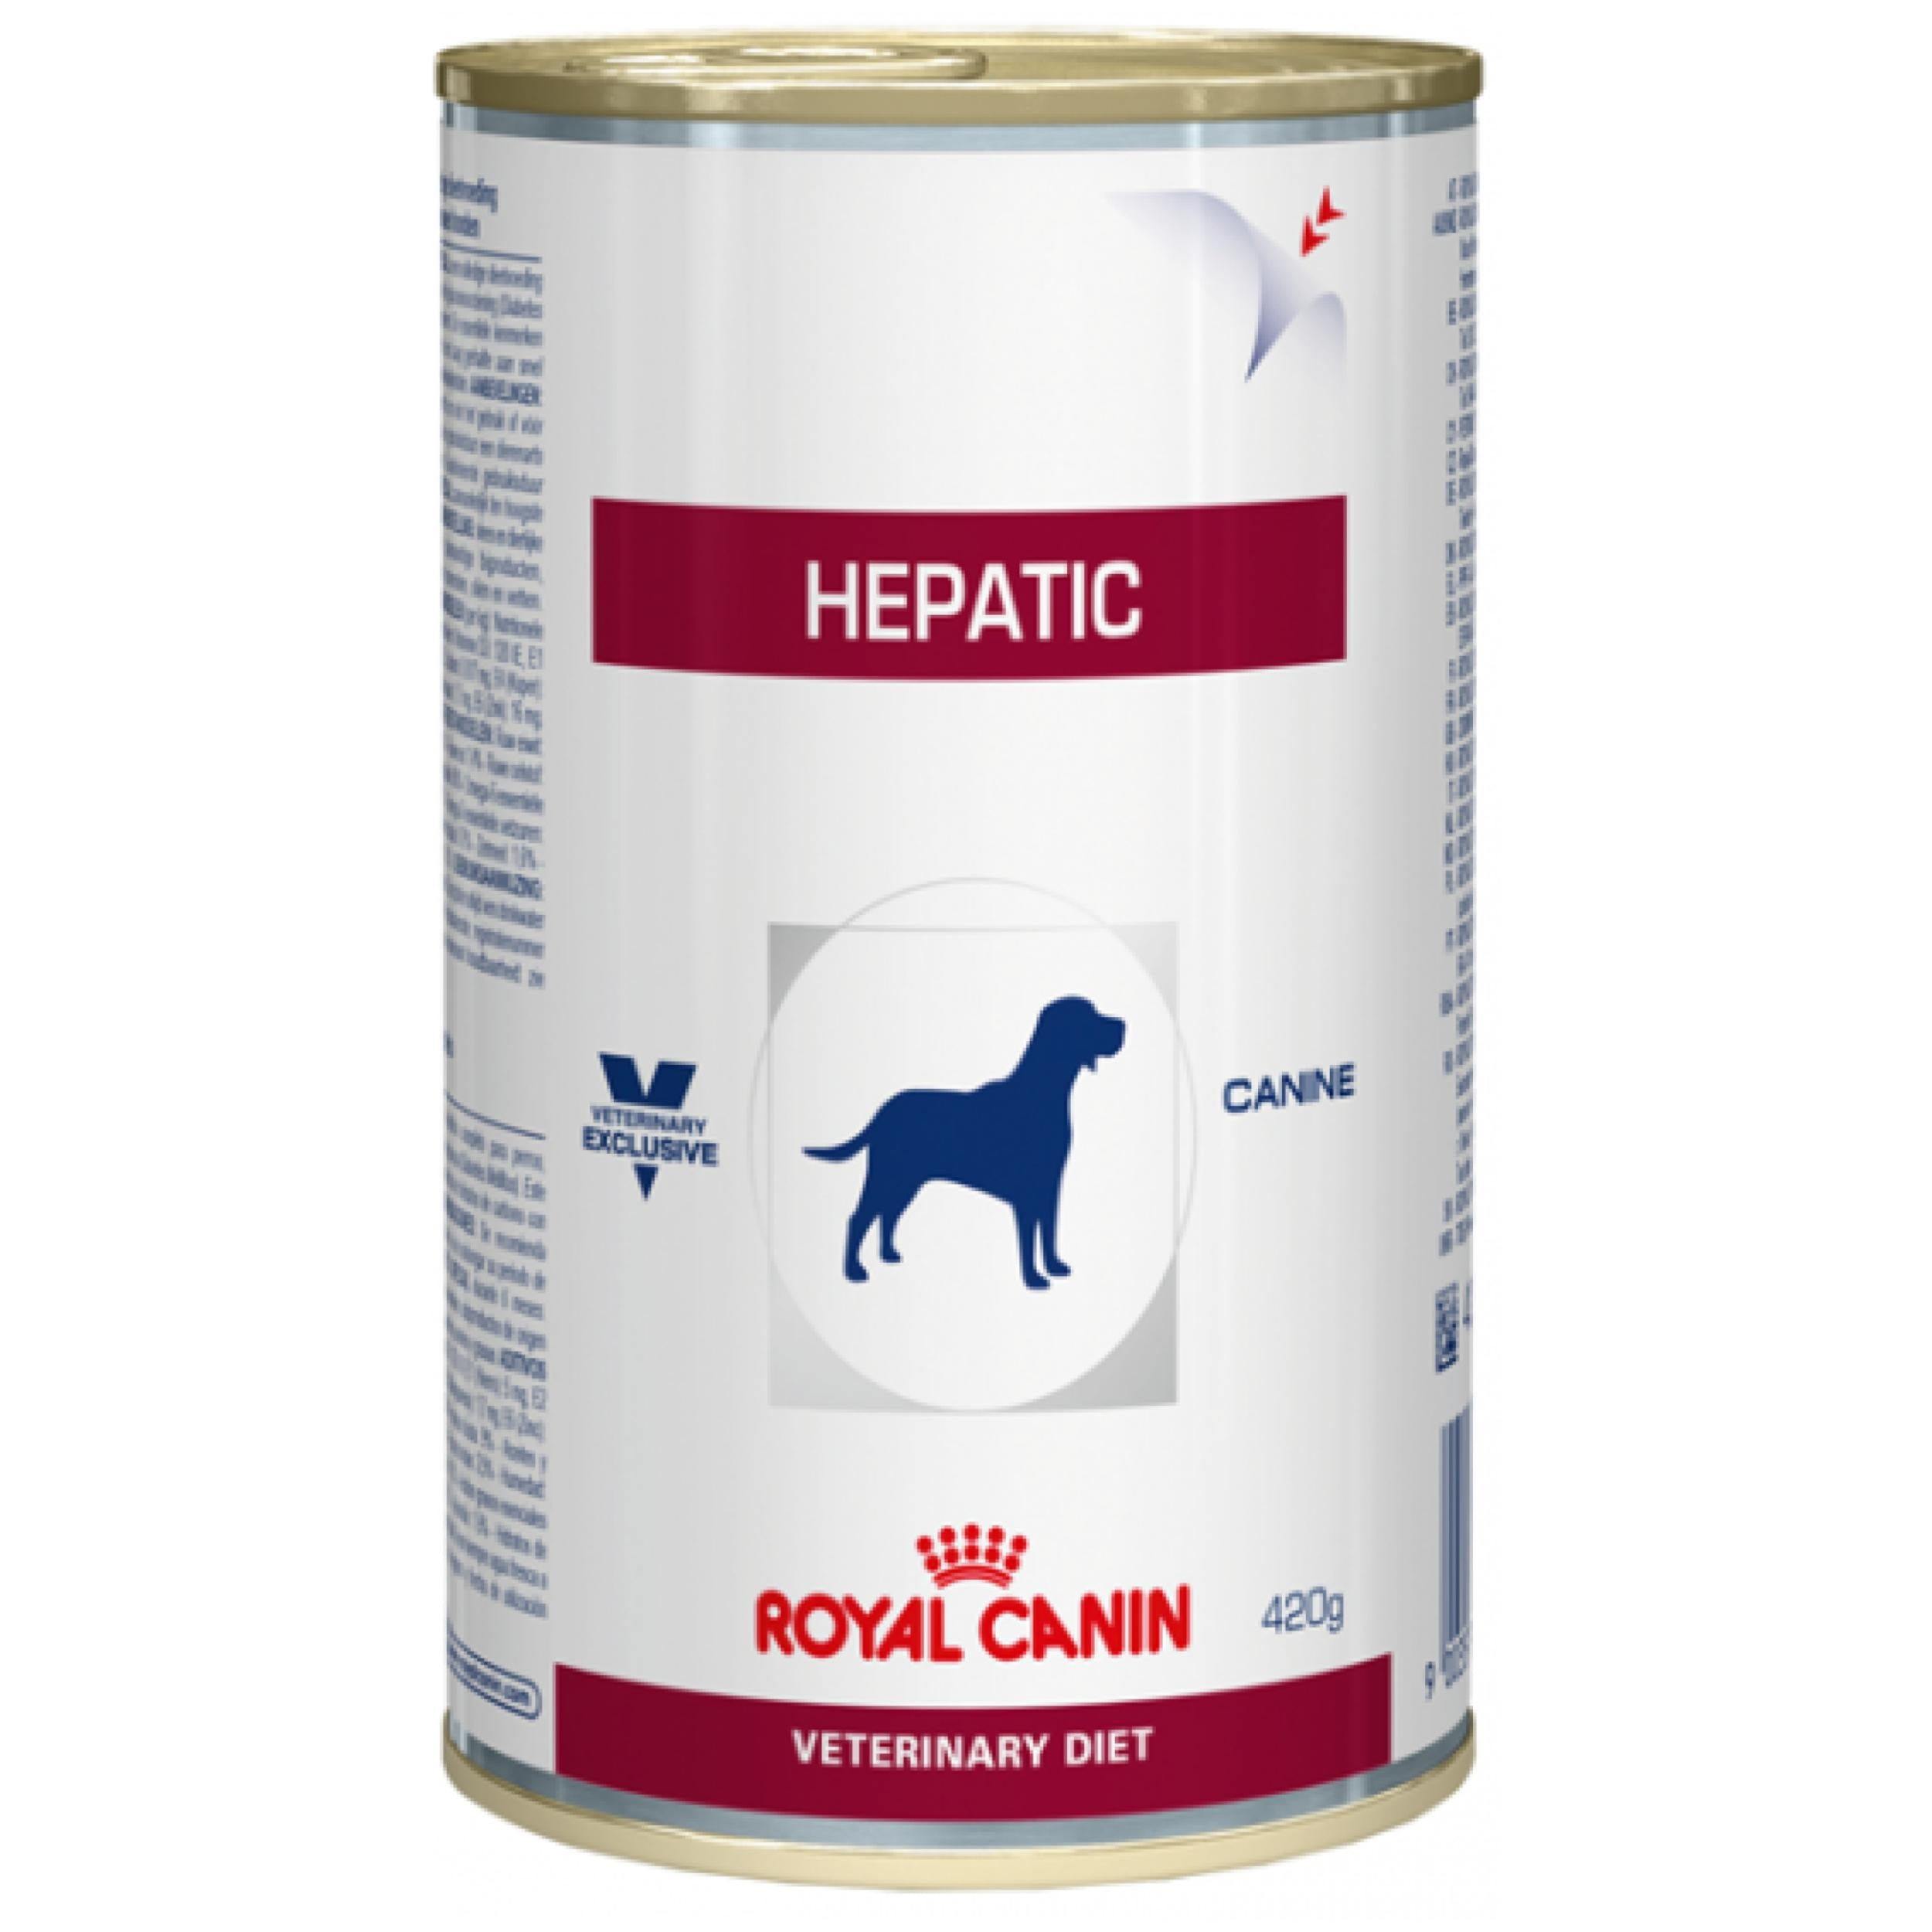 Royal Canin Hepatic Canine Dog Food - Poochles